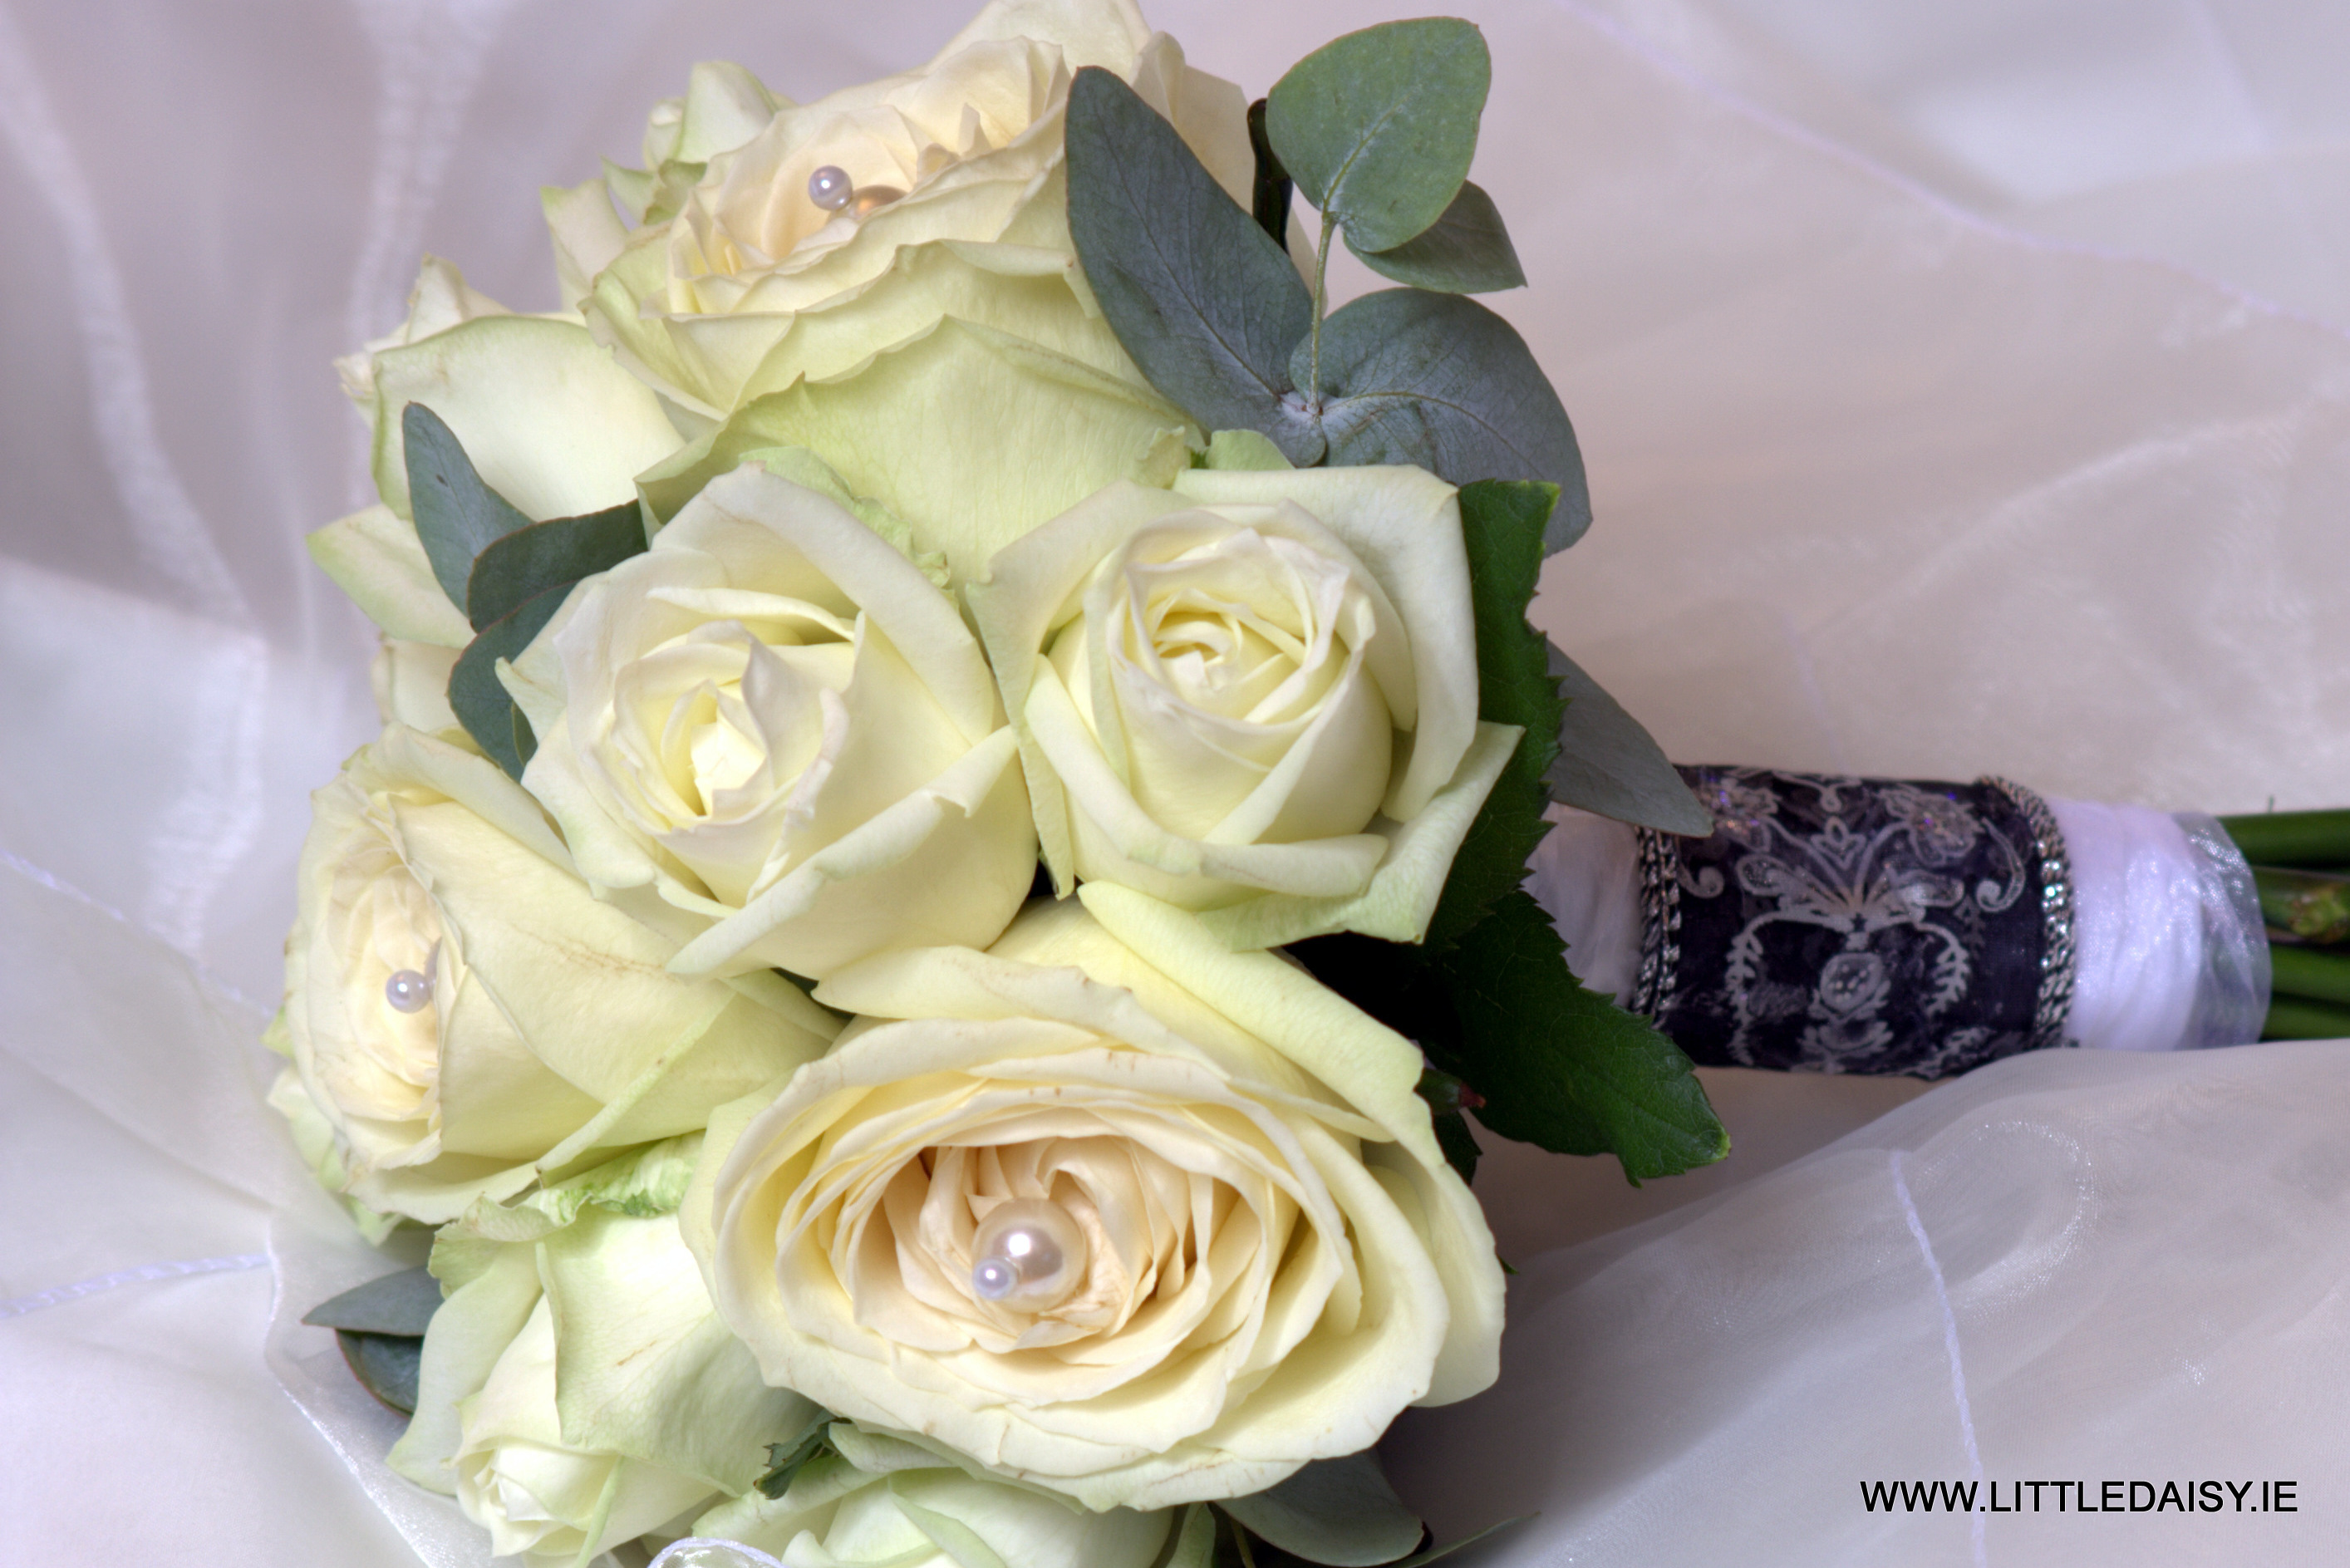 White rose and greenery